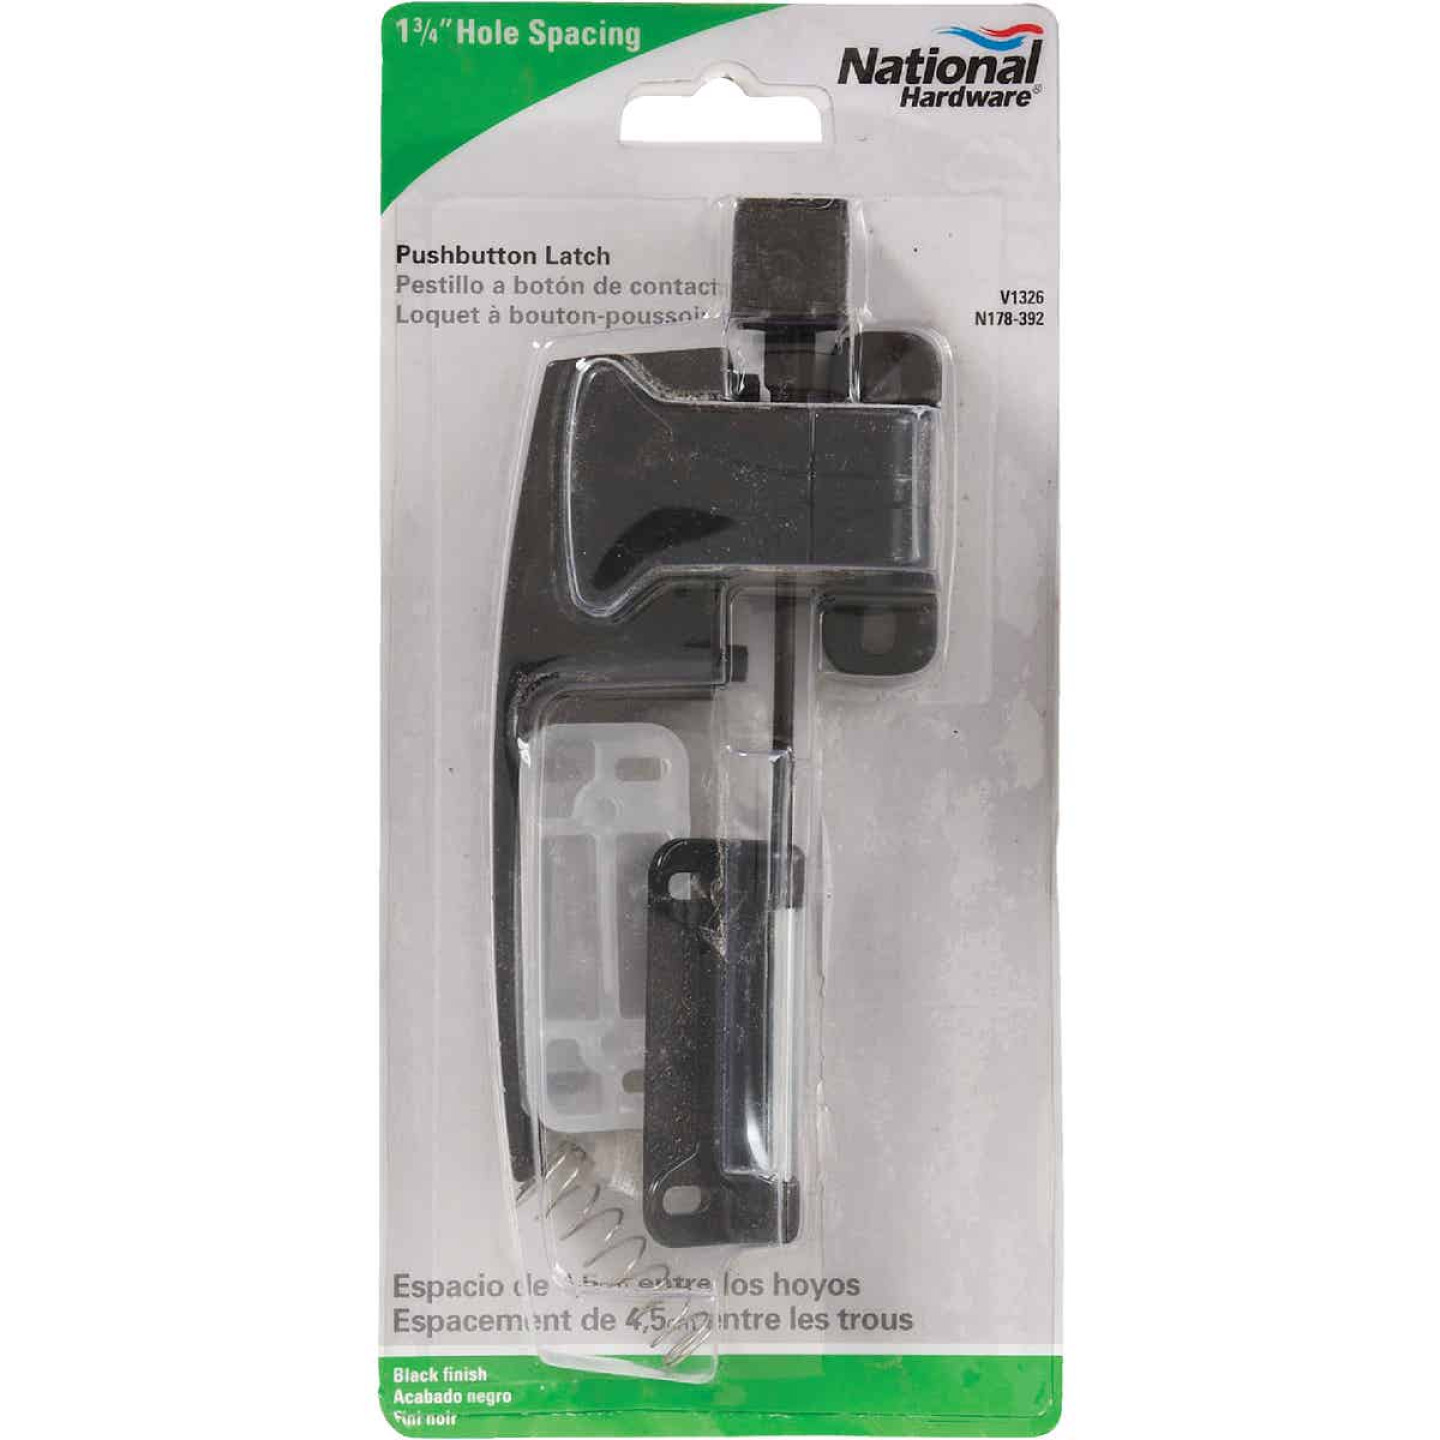 National Black Push Button Latch with 1-3/4 In. Hole Spacing Image 2